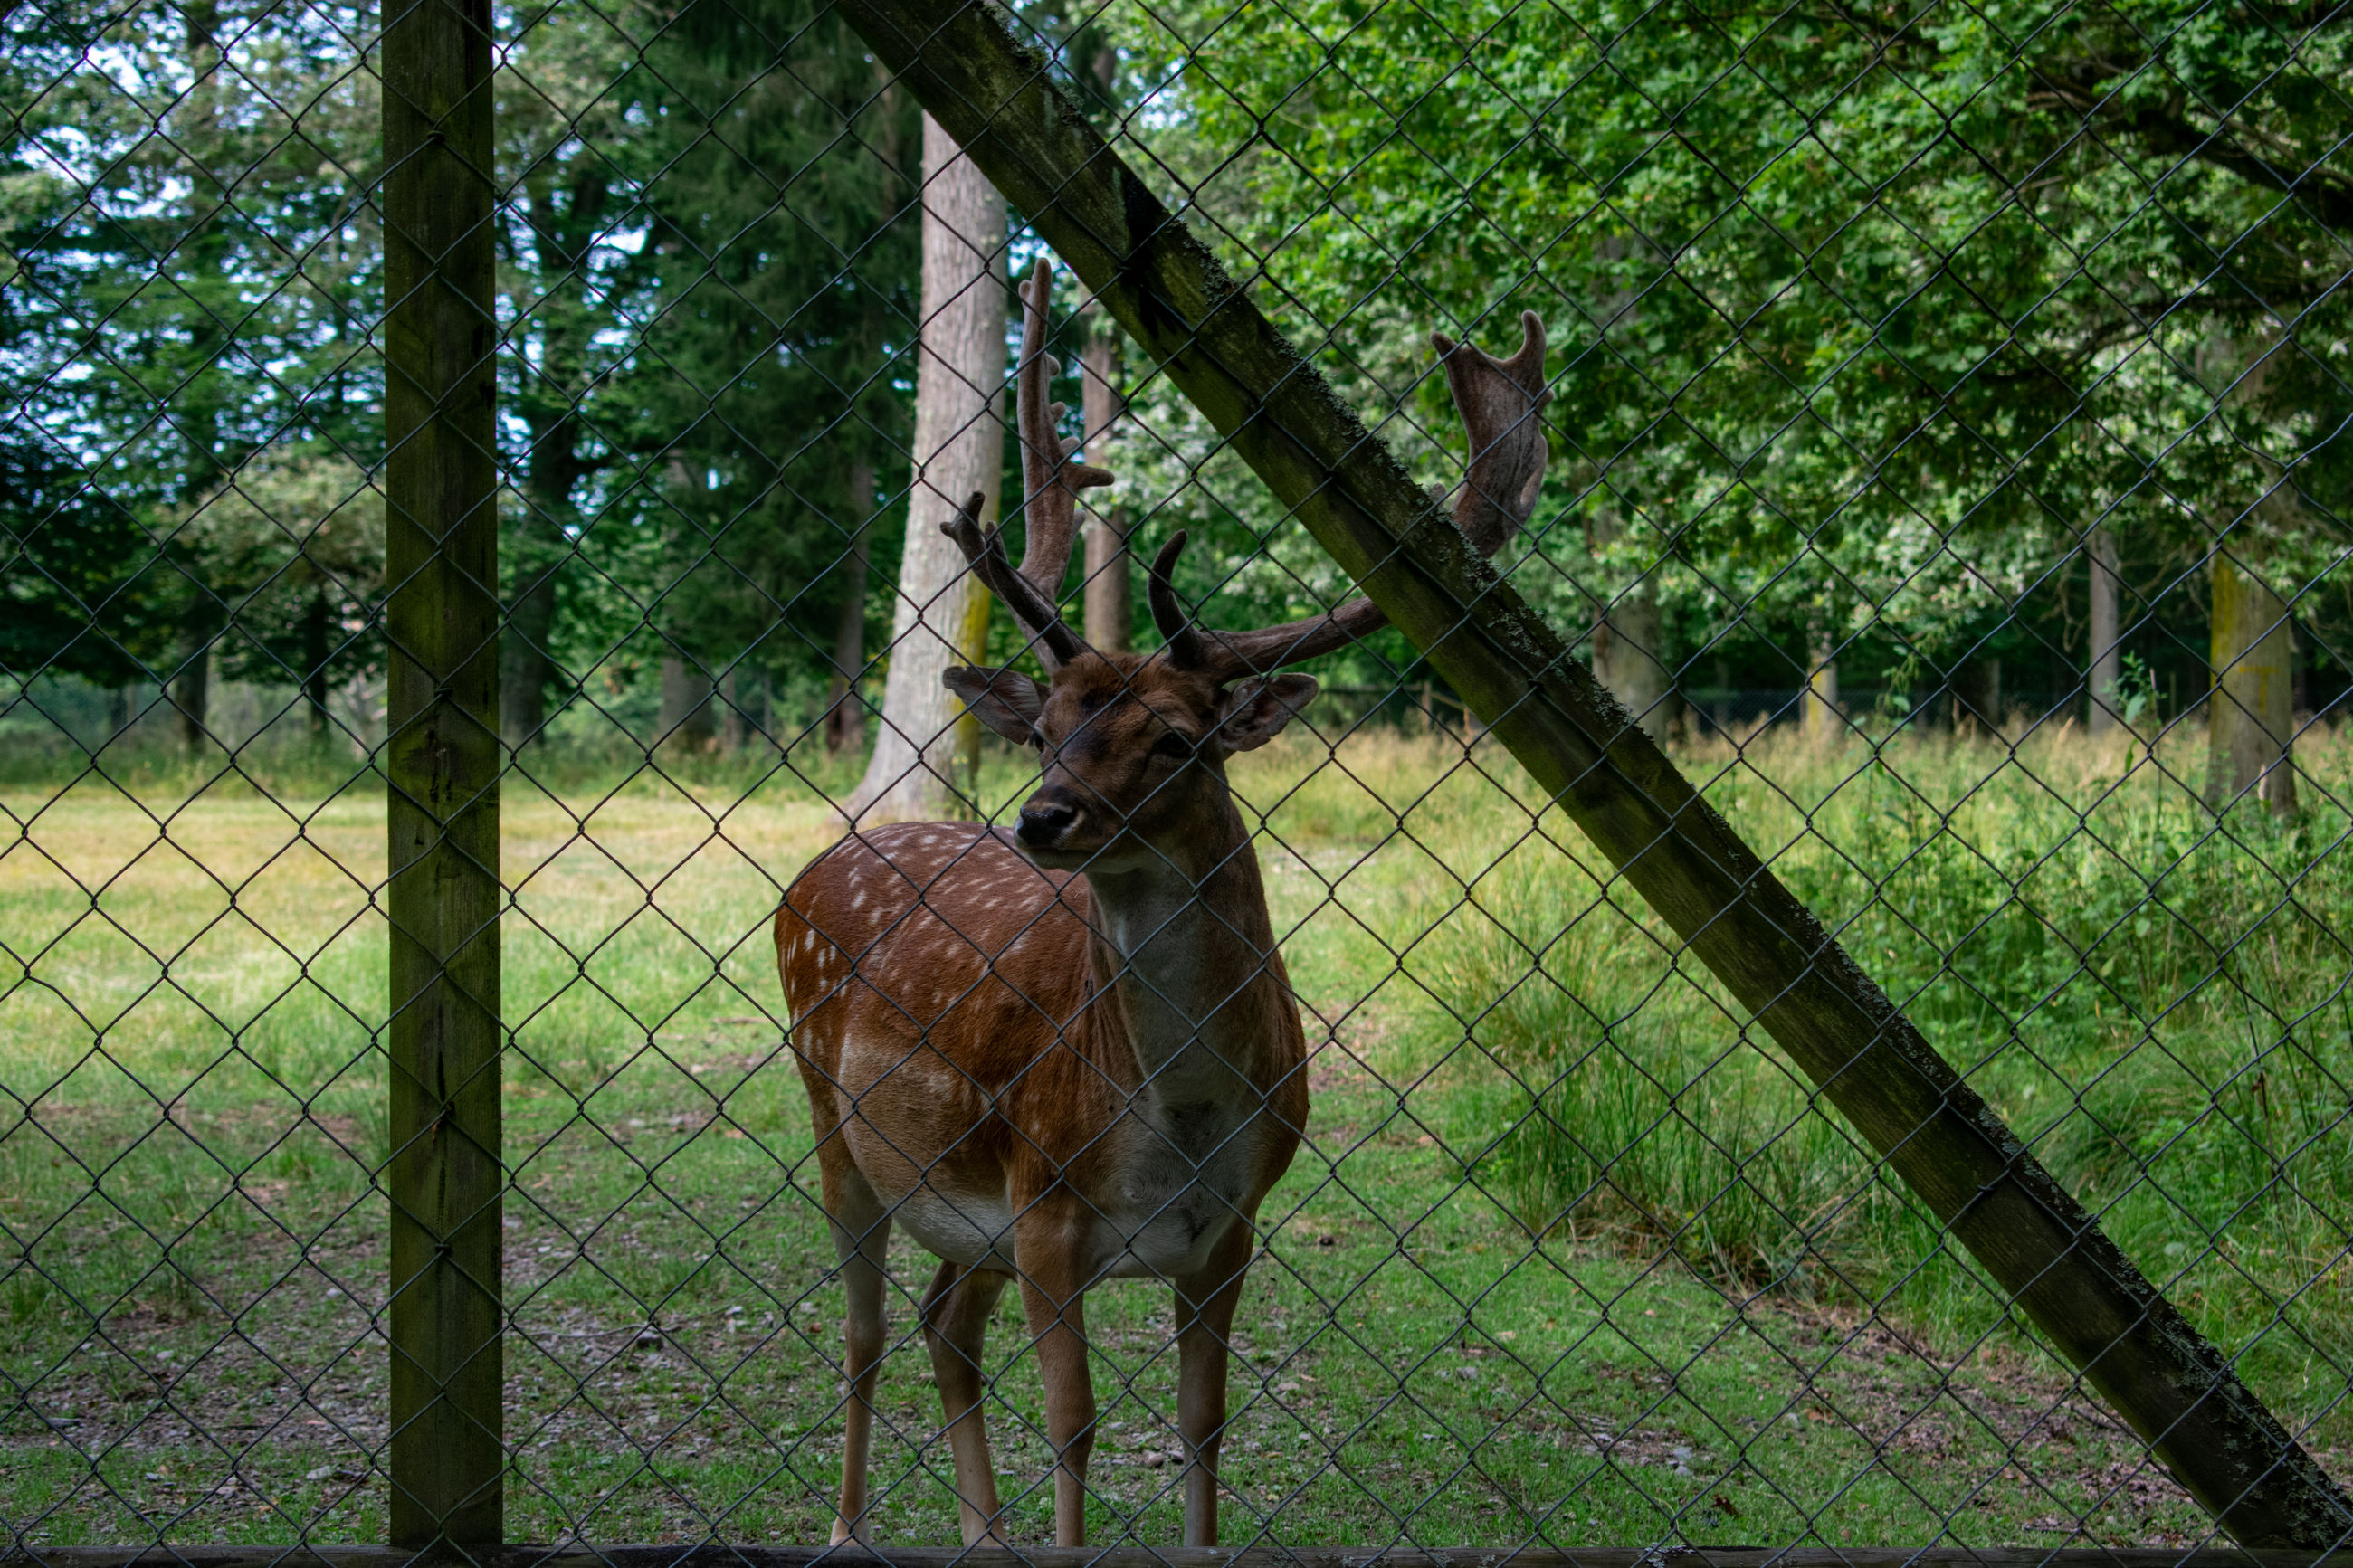 mammal, plant, animal, animal themes, tree, vertebrate, land, domestic animals, animal wildlife, field, nature, fence, barrier, boundary, group of animals, grass, trunk, day, deer, standing, no people, outdoors, herbivorous, zoo